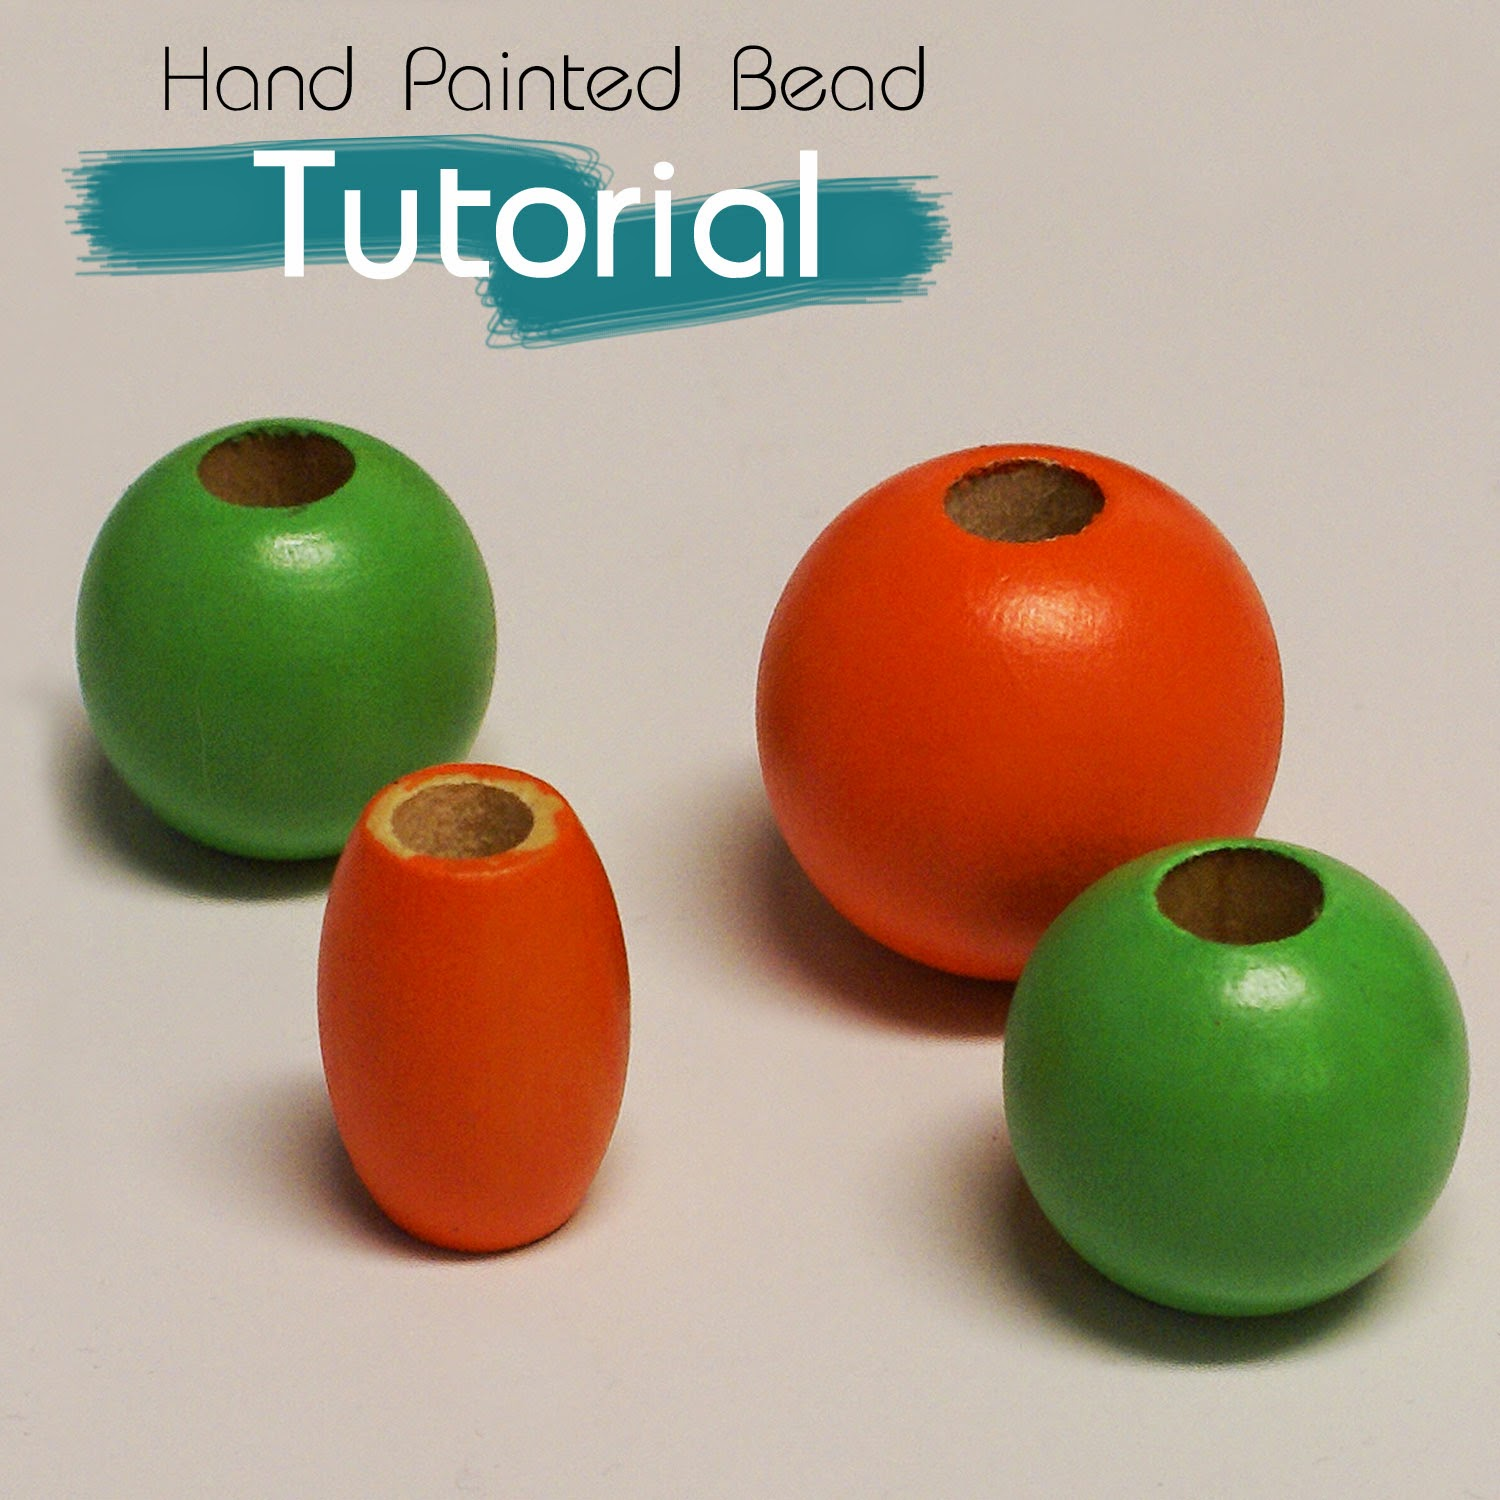 Hand painted bead tutorial - Pepperell Braiding Company